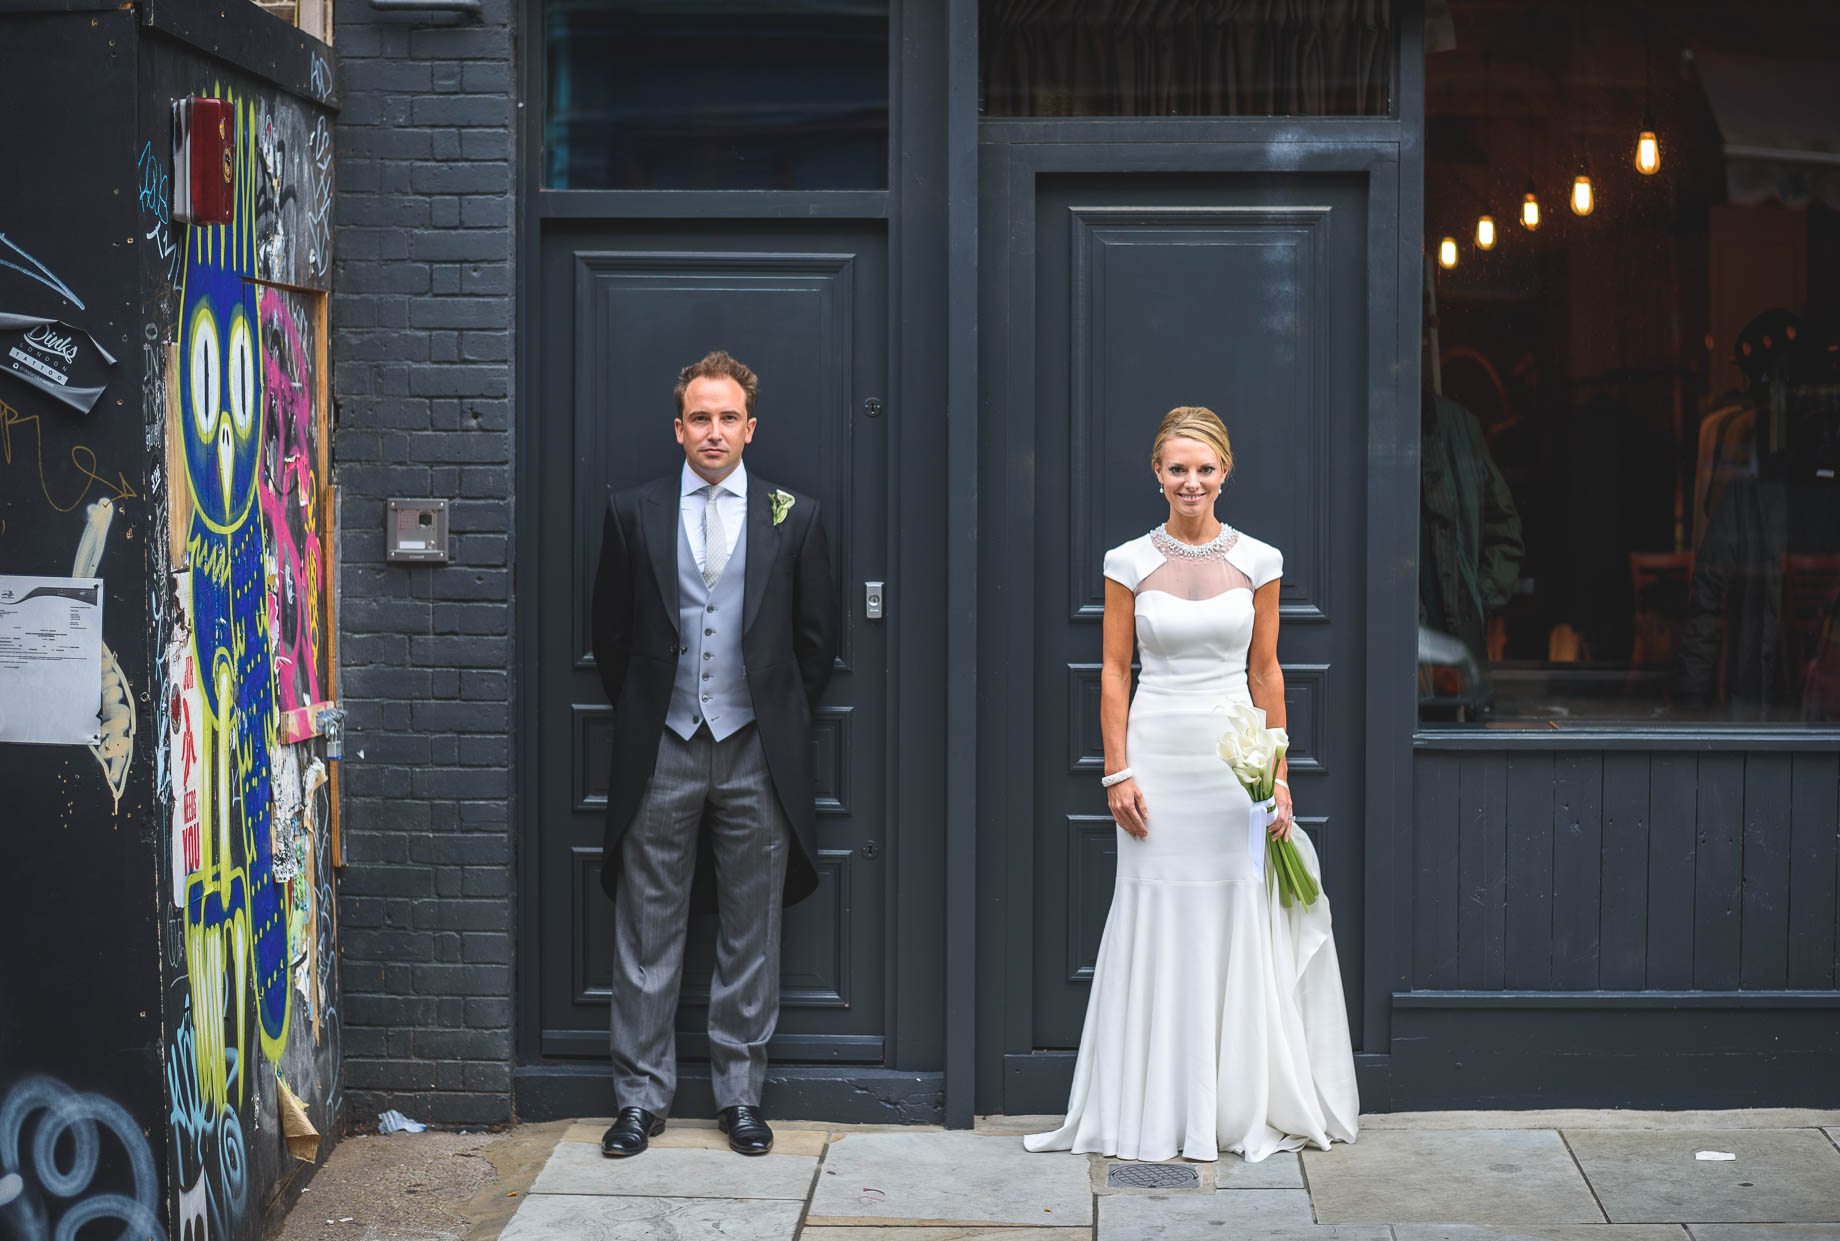 Shoreditch wedding photography - Guy Collier - Kat and Henry (115 of 200)